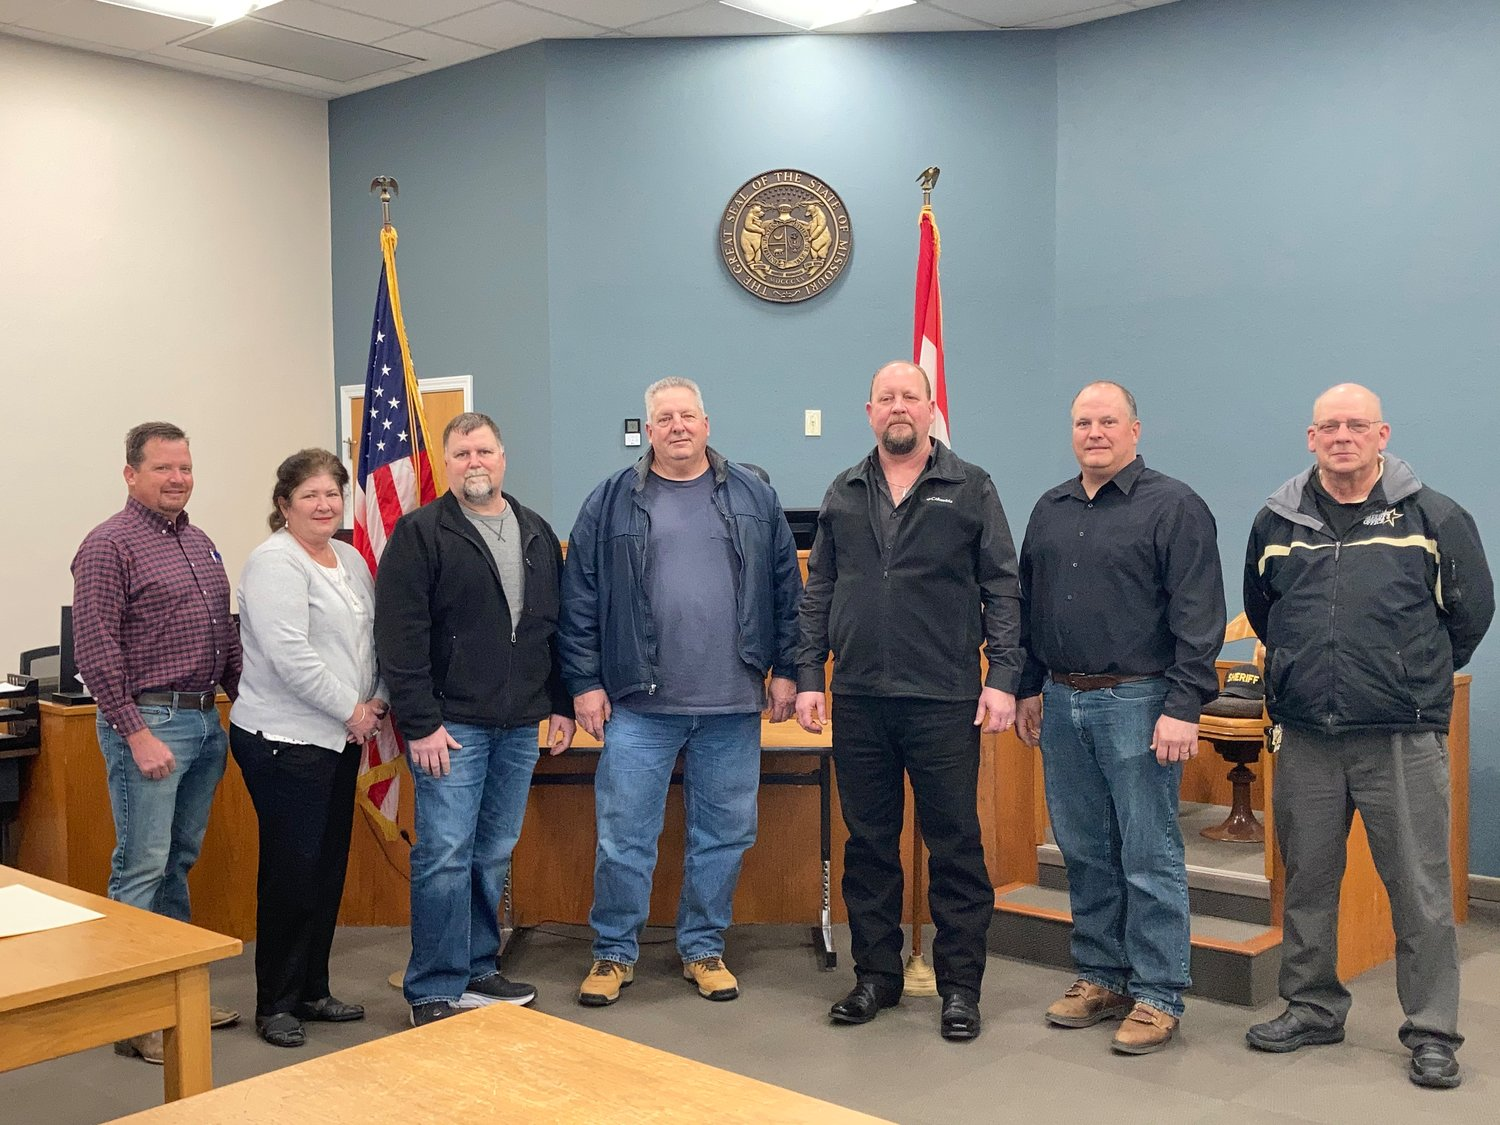 Officials were sworn into office Dec. 31 by County Clerk Jared Kutz. From left, are, County Surveyor Tim Baer, Public Administrator Tammy Tarrillion, County Assessor Charlie Triller, County Coroner Bill Bohnert, District 1 commissioner Jay Wengert, District 2 commissioner Keith Hoehn and Perry County Sheriff Gary Schaaf.